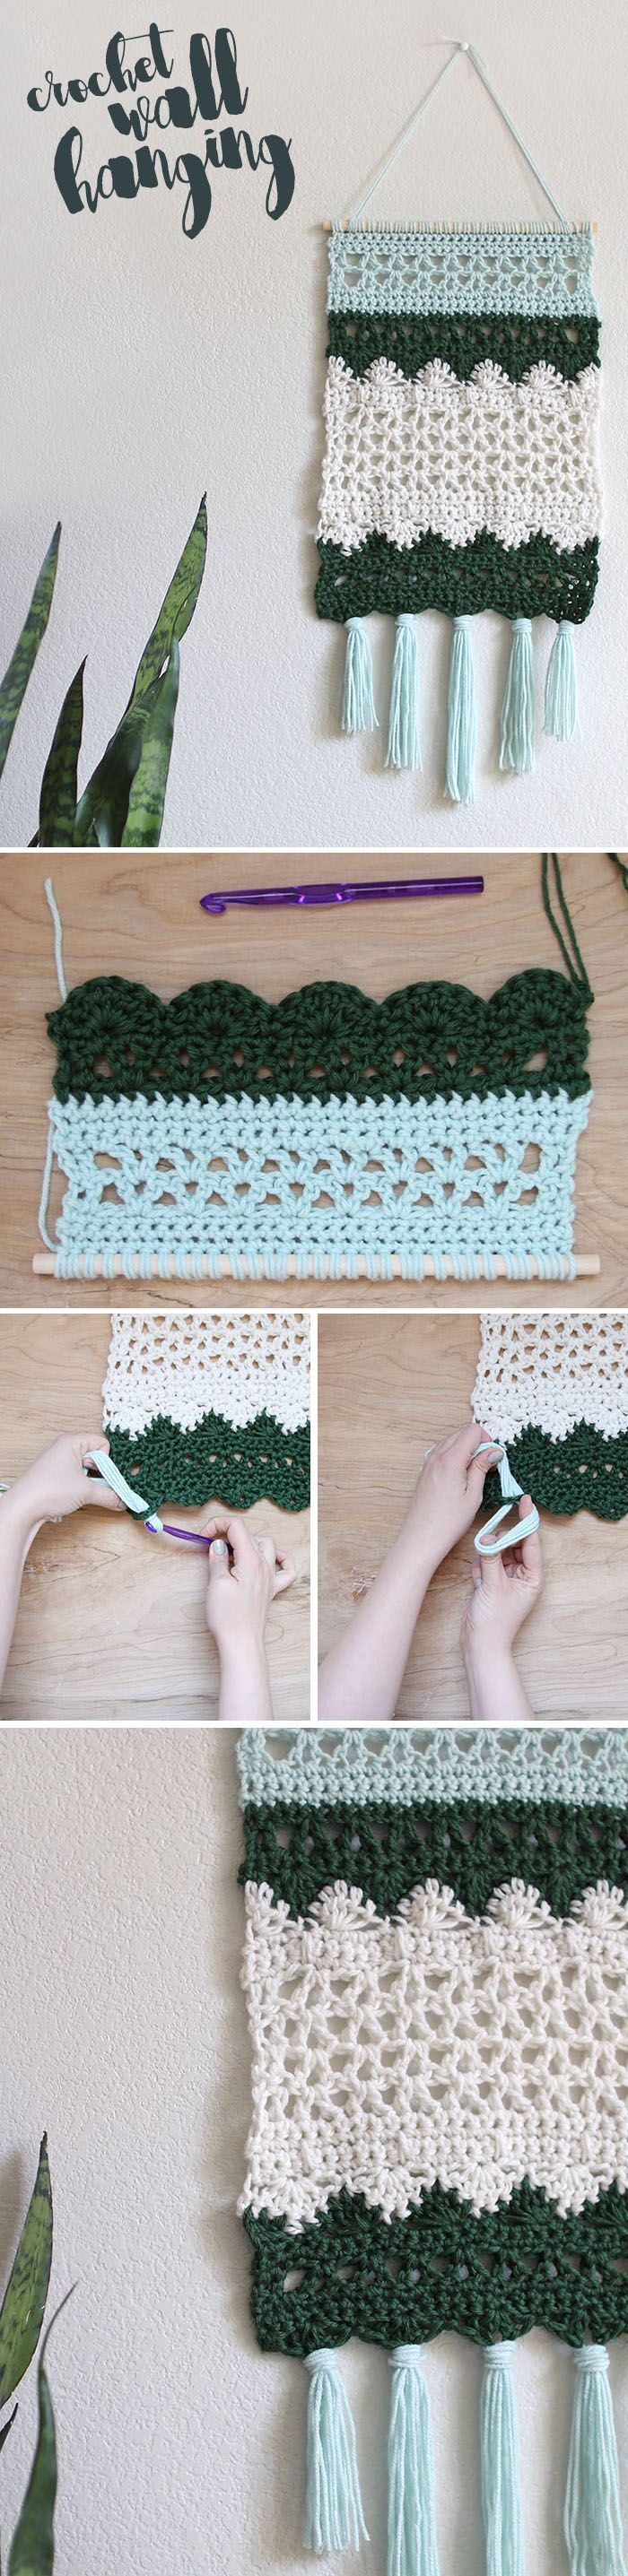 Home Decor Crochet Patterns Free On